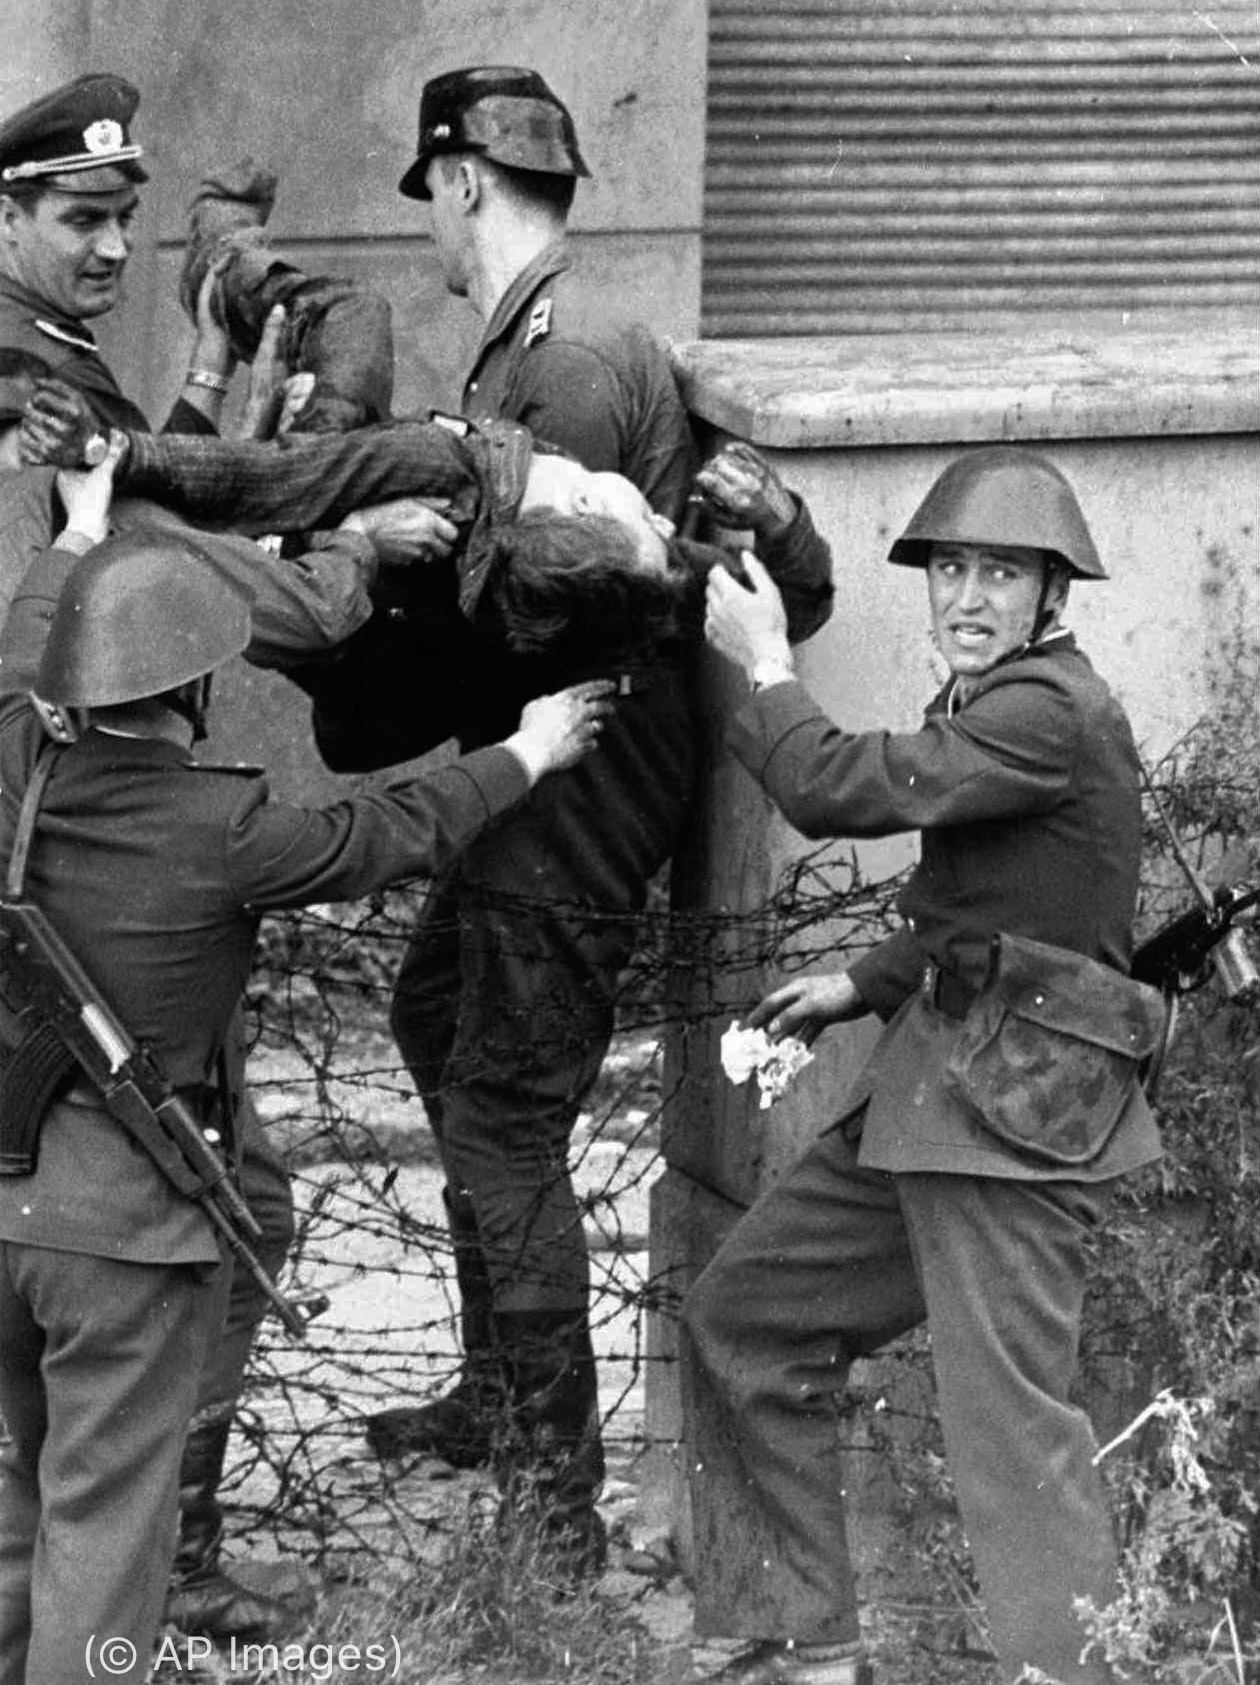 Uniformed guards holding man climbing fence (© AP Images)